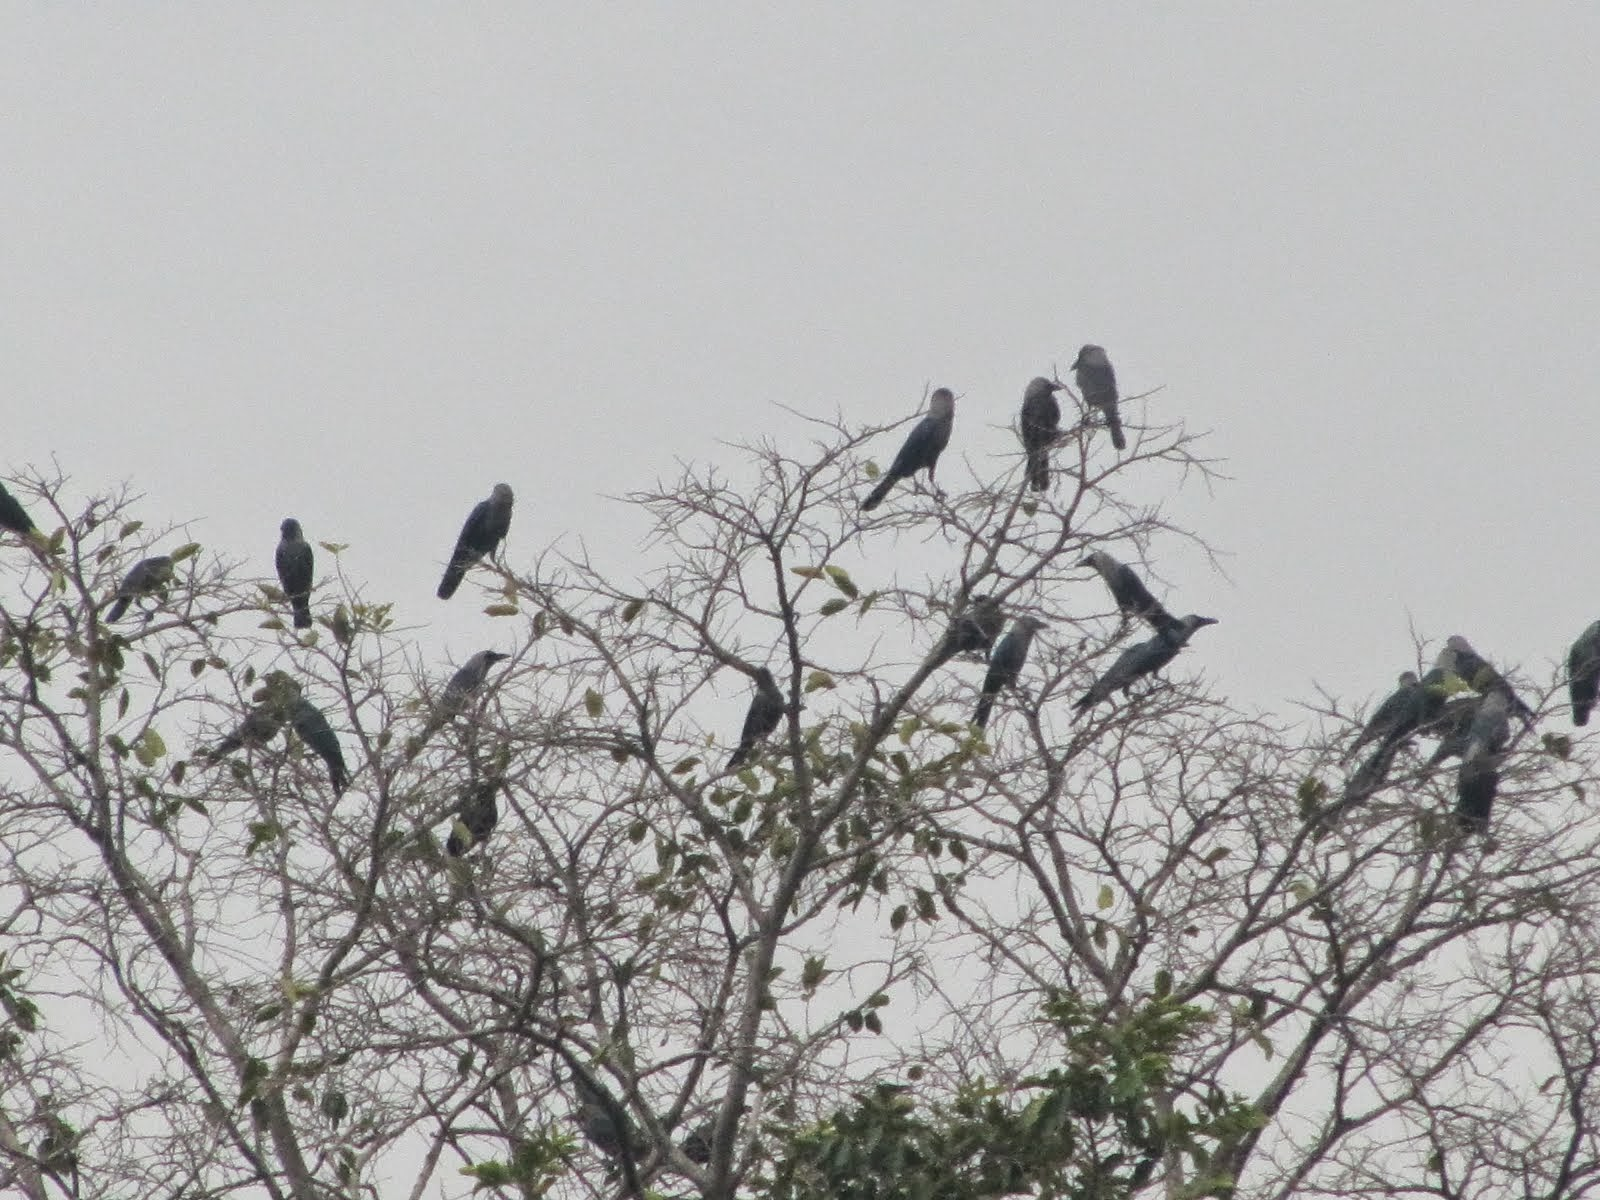 The common Indian crow